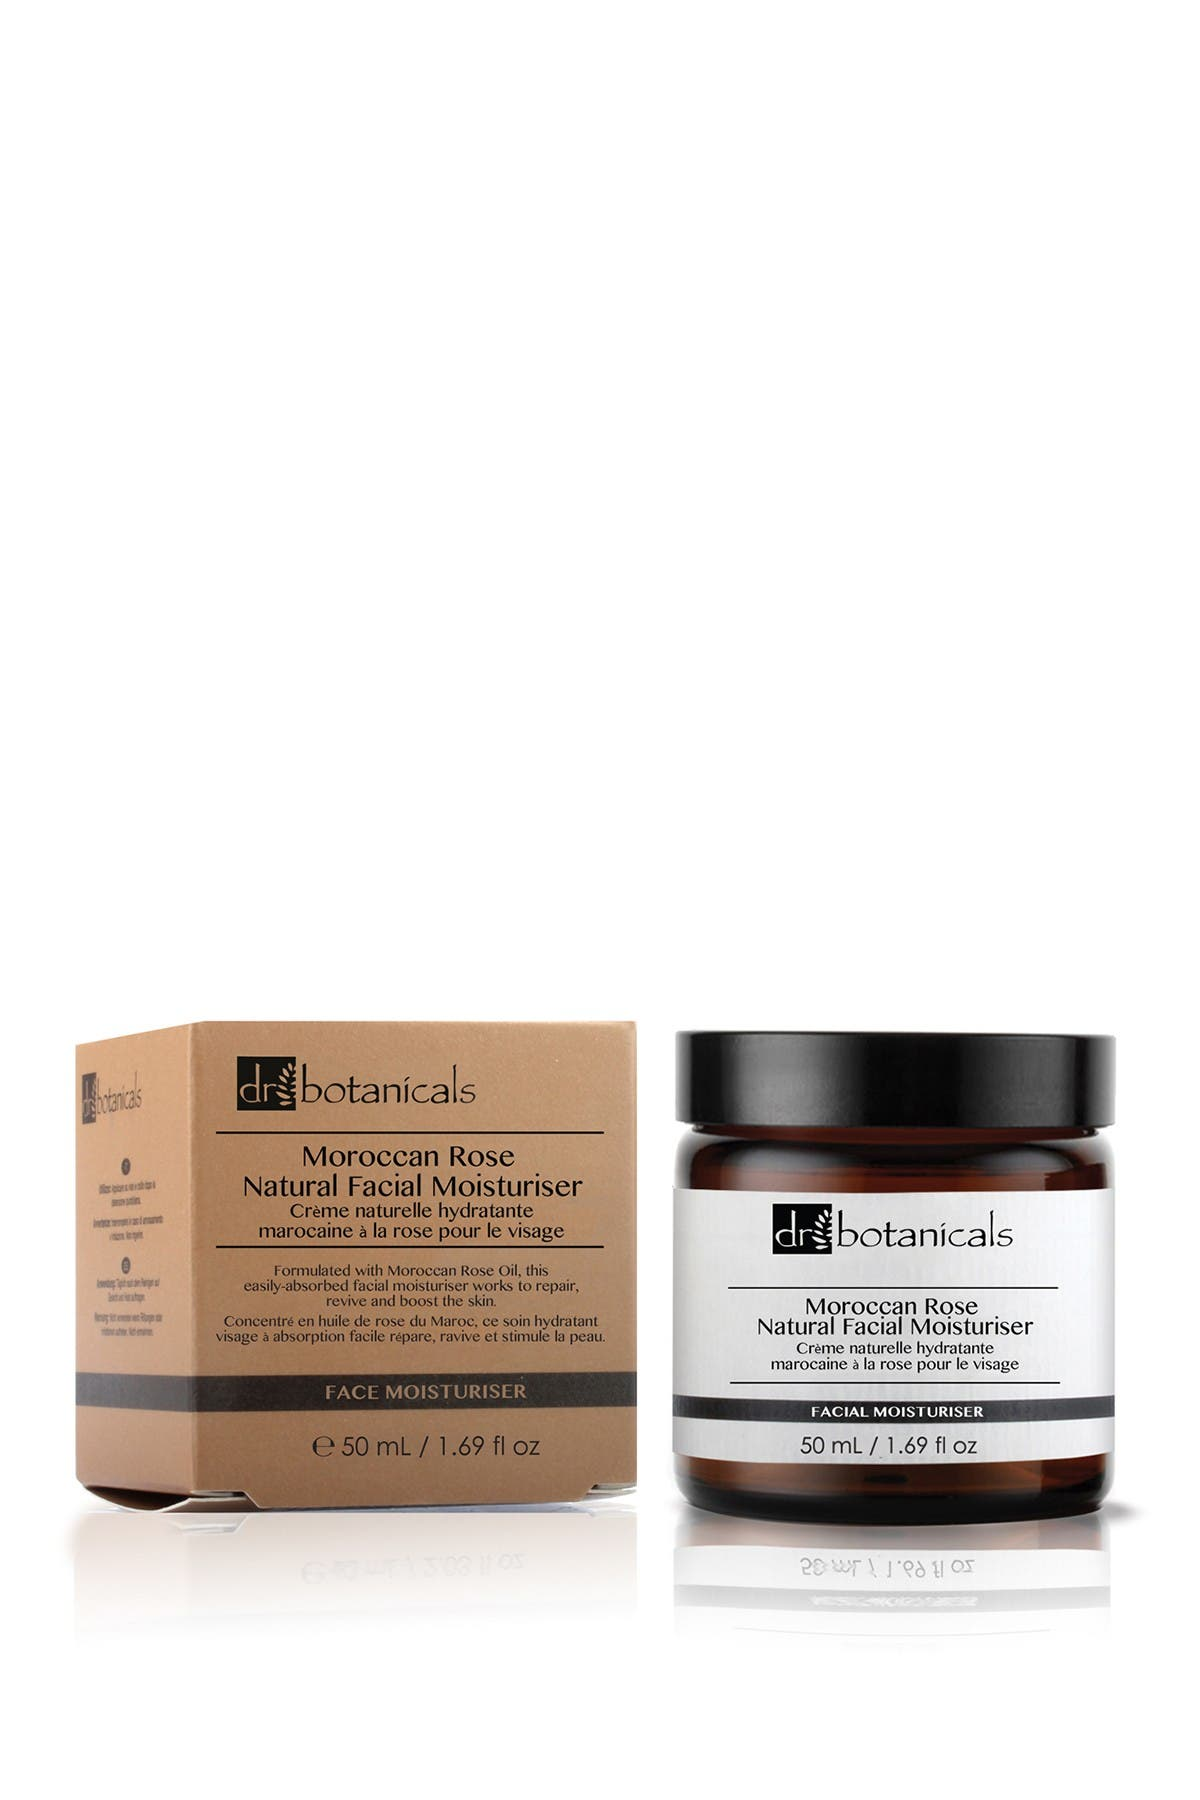 Image of skinChemists Moroccan Rose Natural Facial Moisturizer